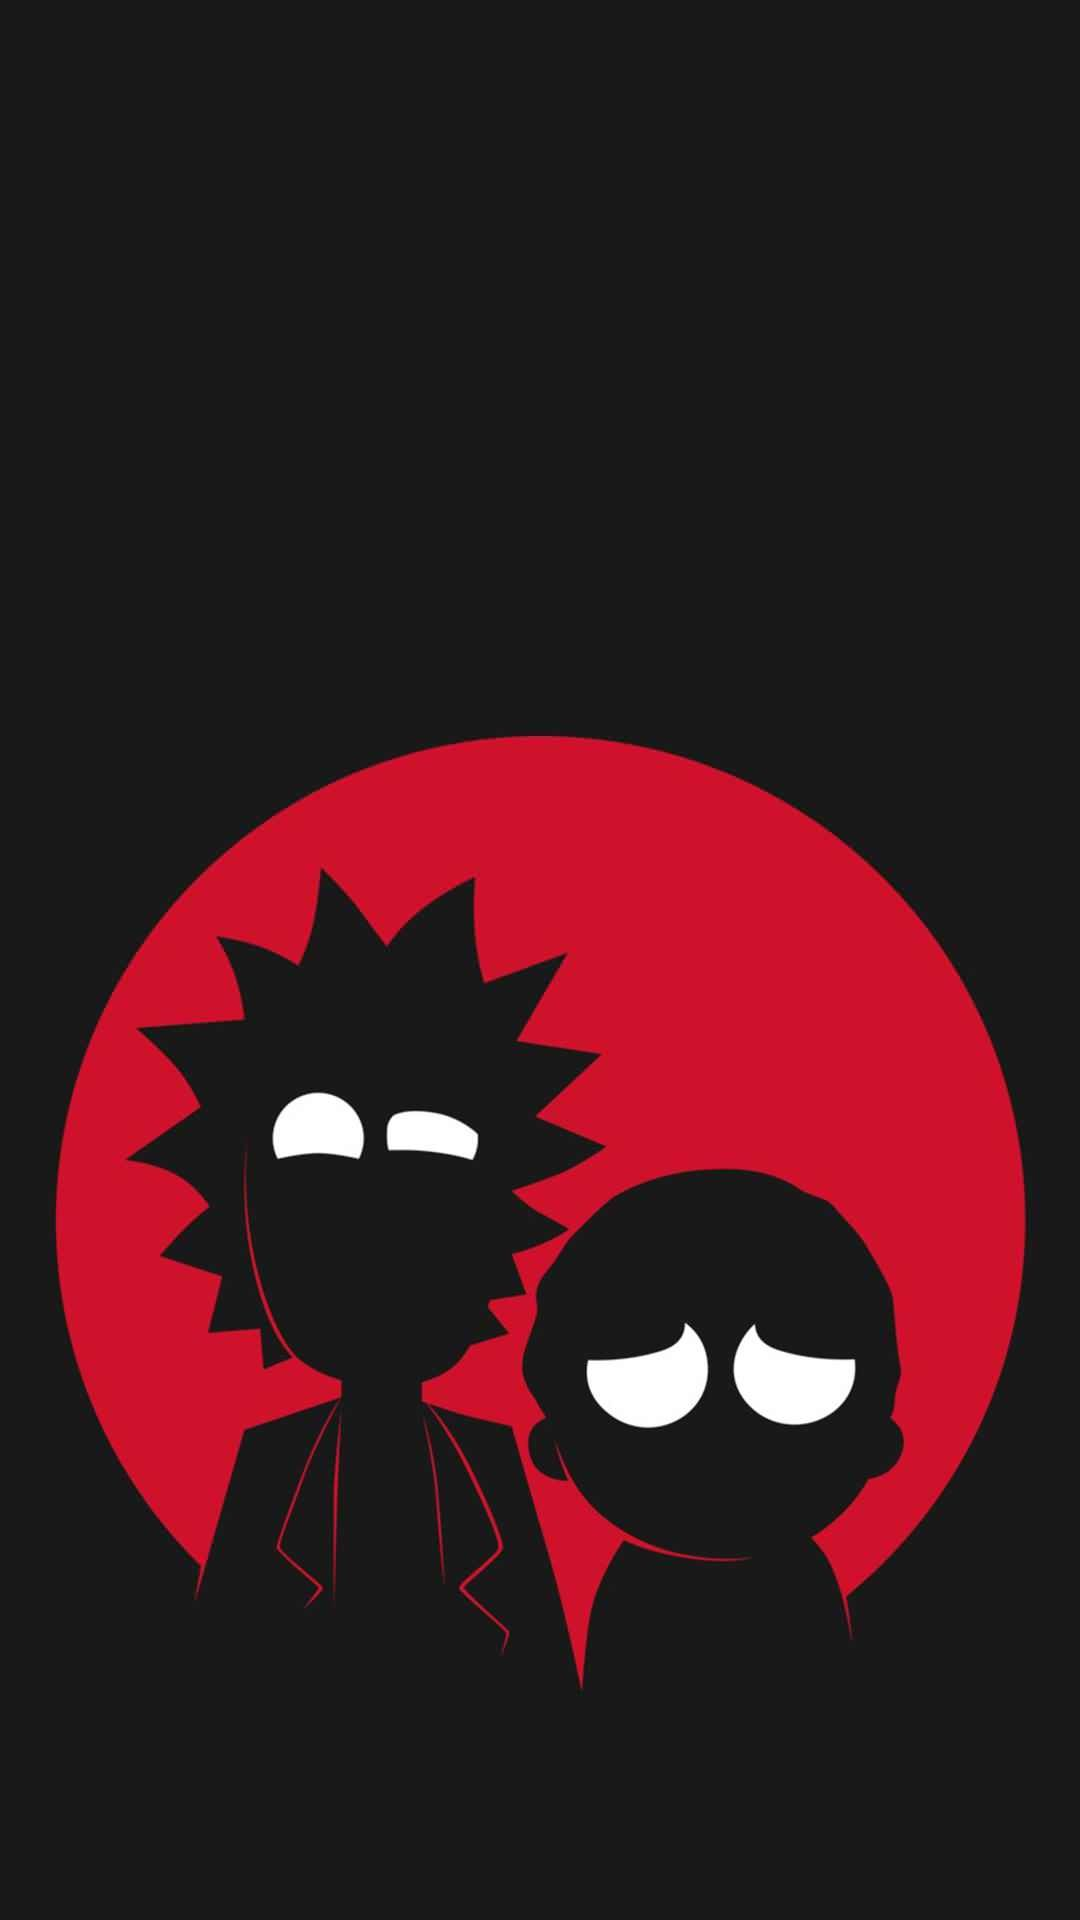 redo - imgur link - rick & morty iphone (plus) wallpapers (i guess